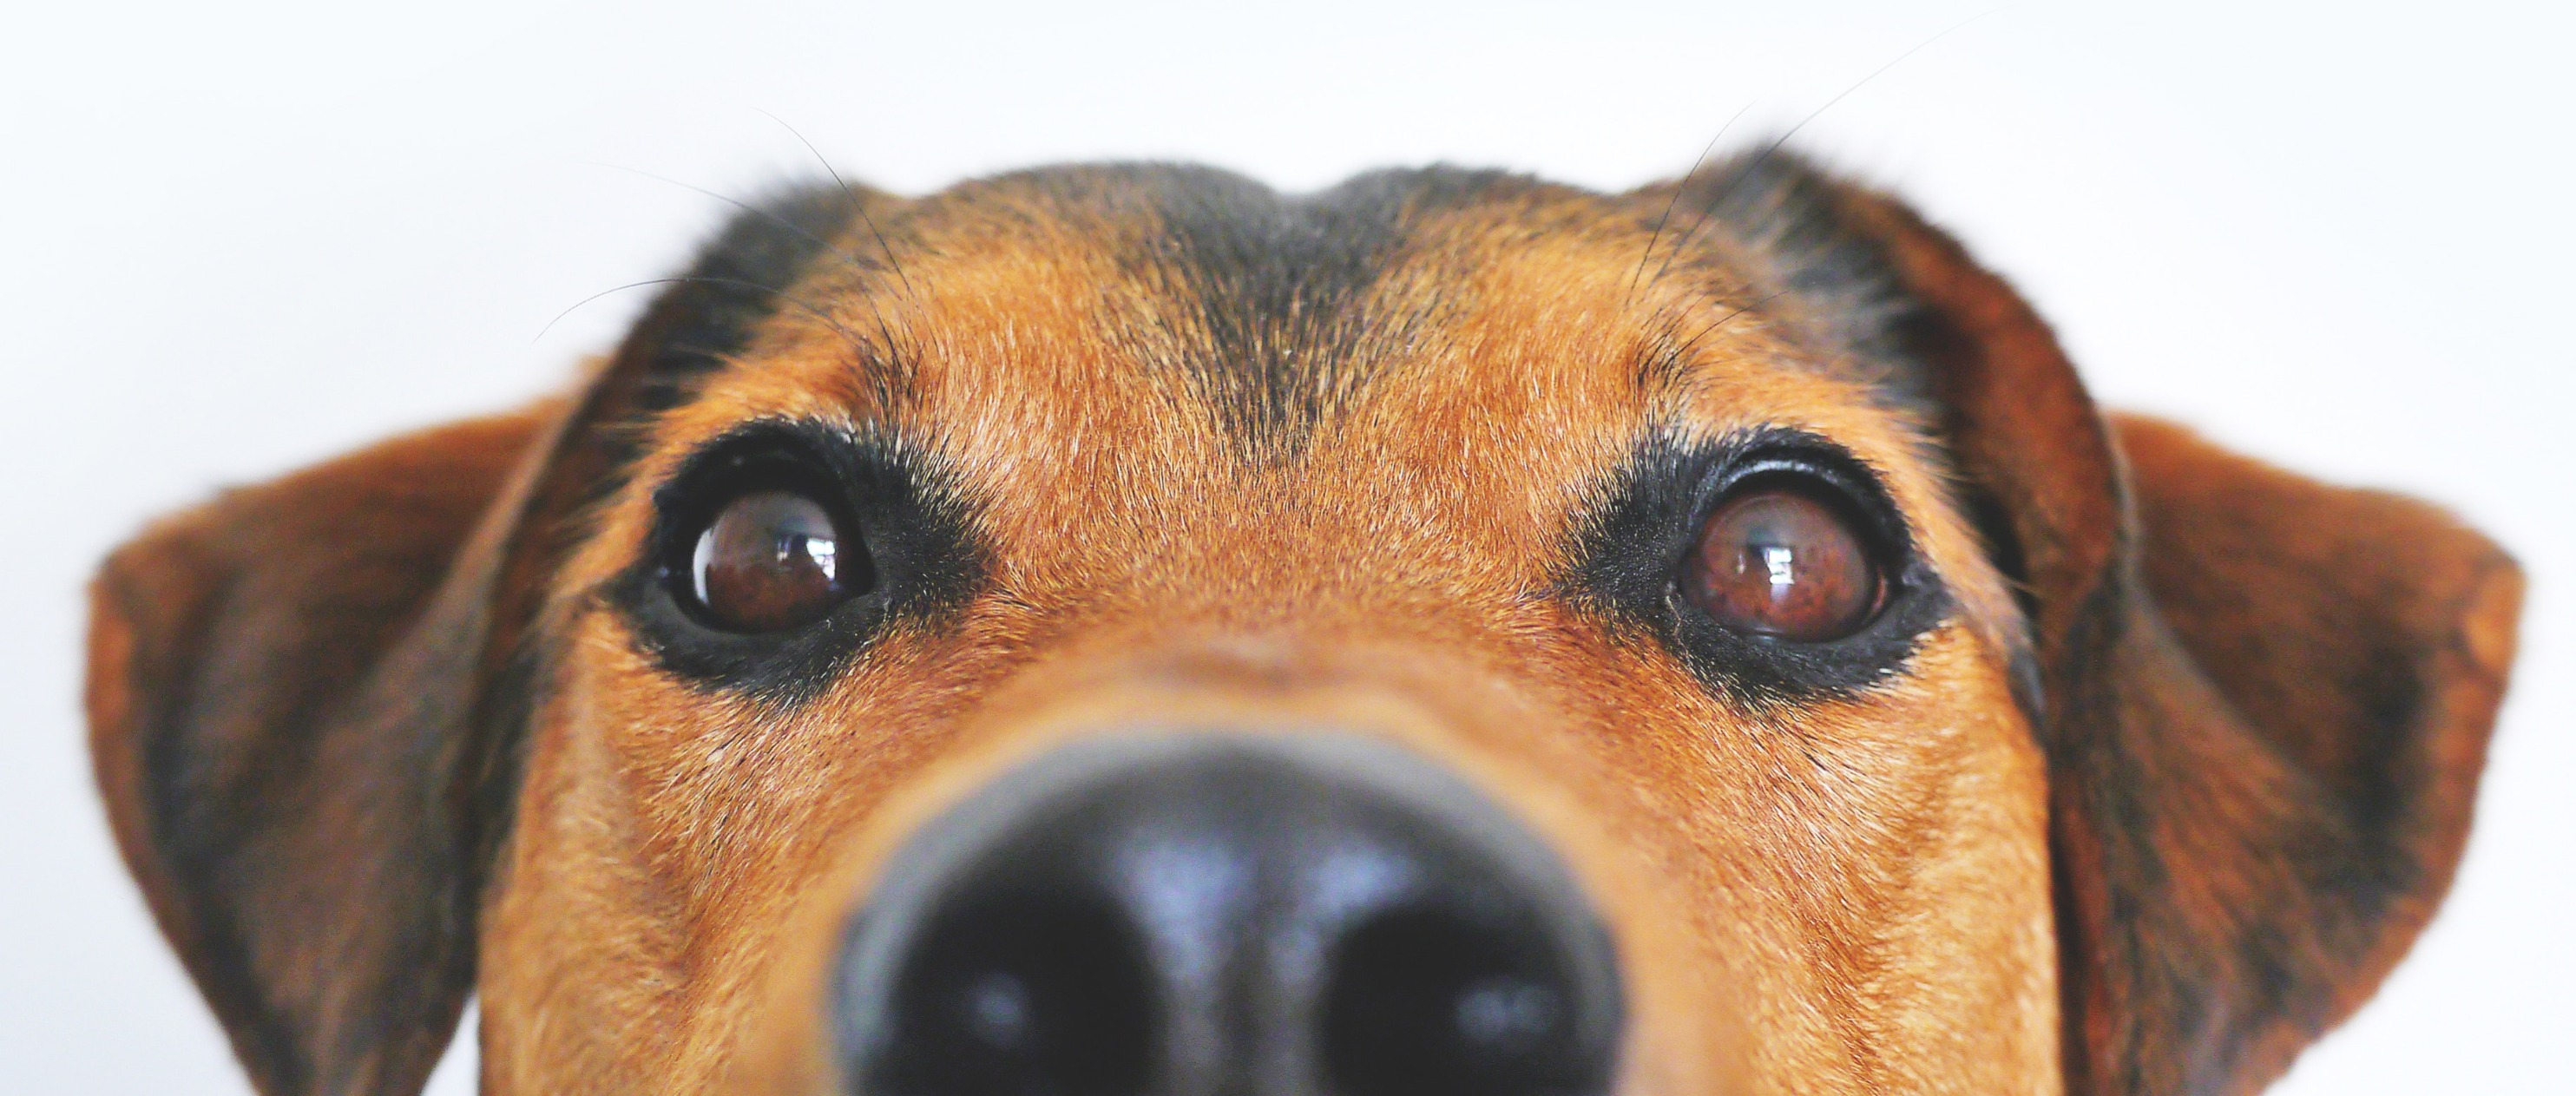 adorable-blur-breed-close-up-Photo by Lu